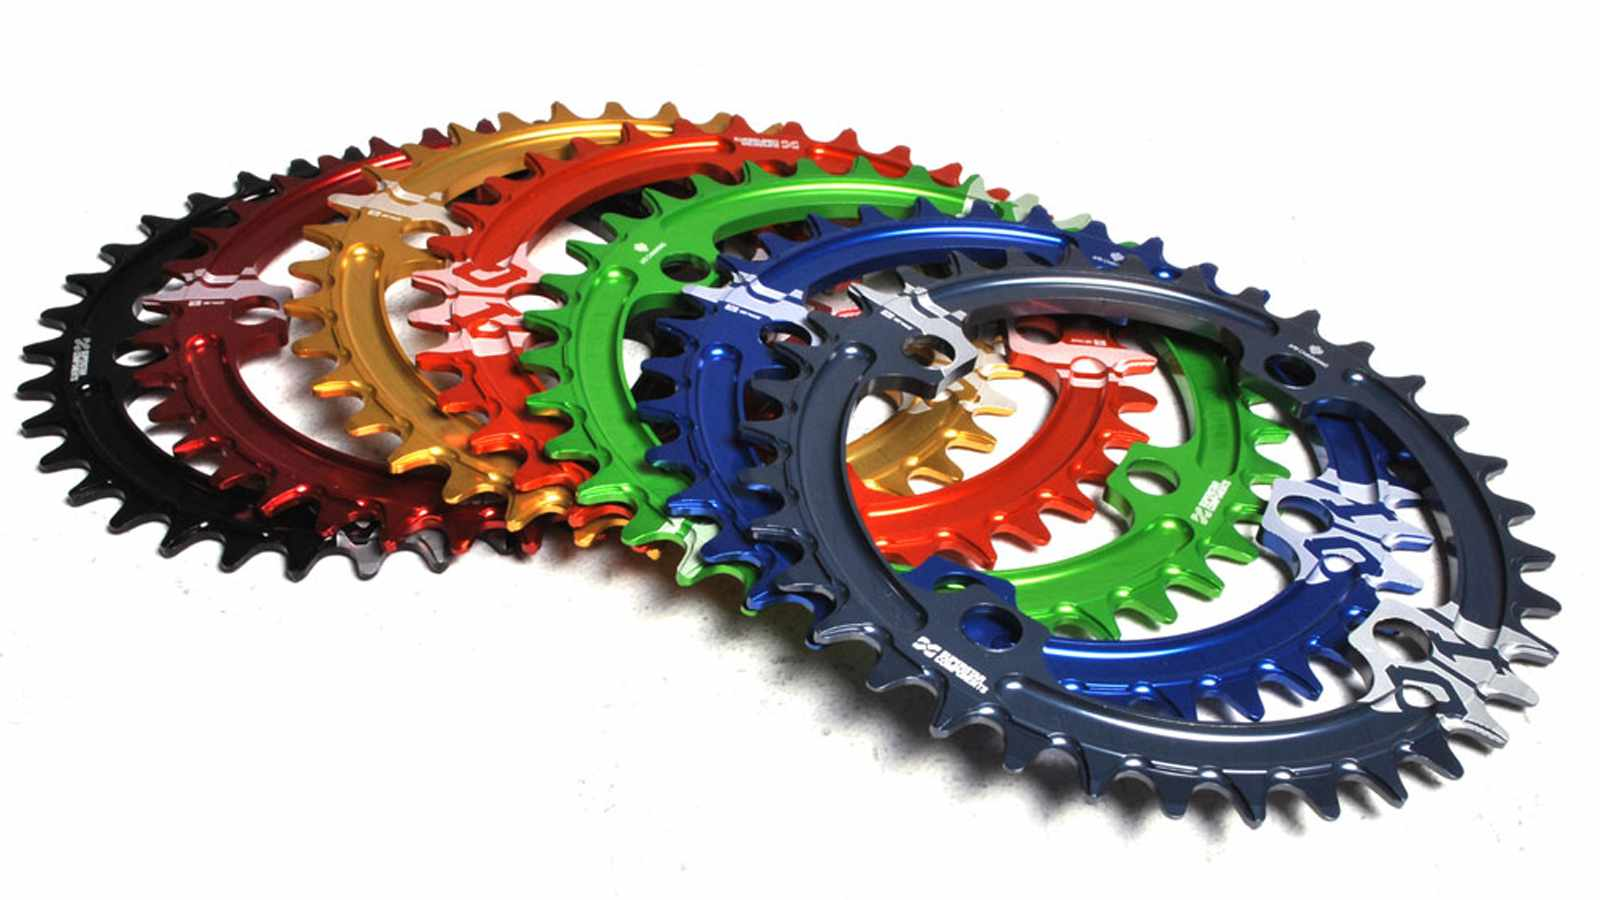 Superstar Components have just launched a UK made narrow-wide style chainring that undercuts all competition